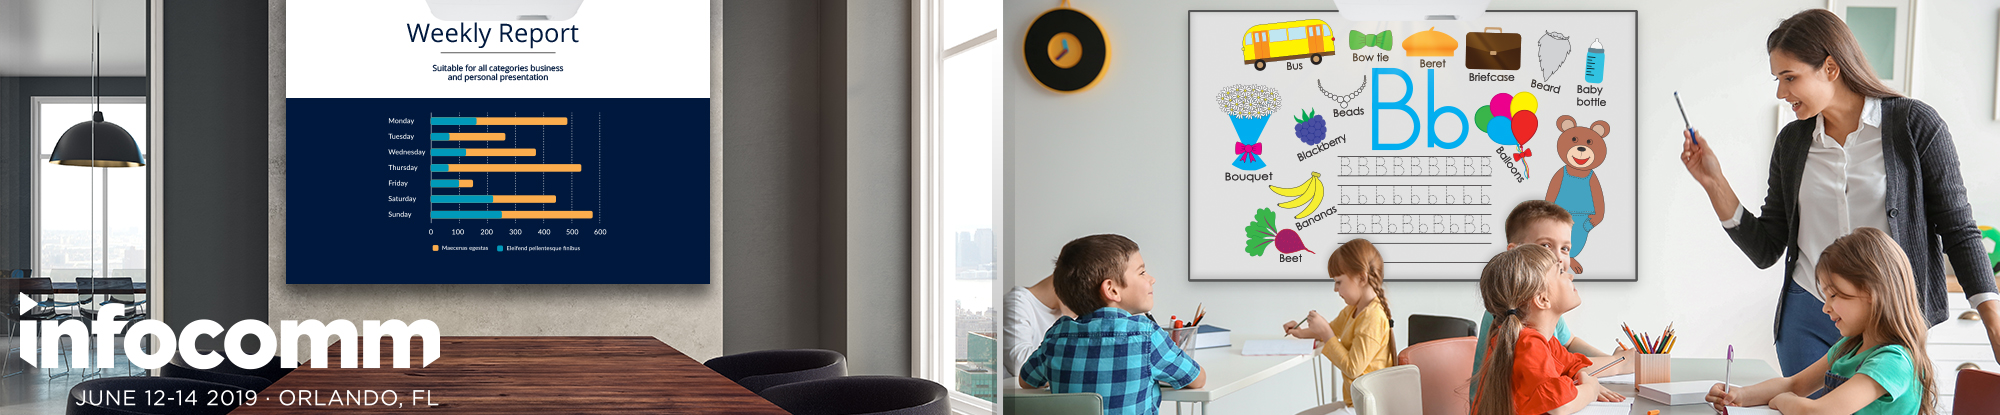 ViewSonic Introduces WUXGA Projector for Classrooms and Small Businesses